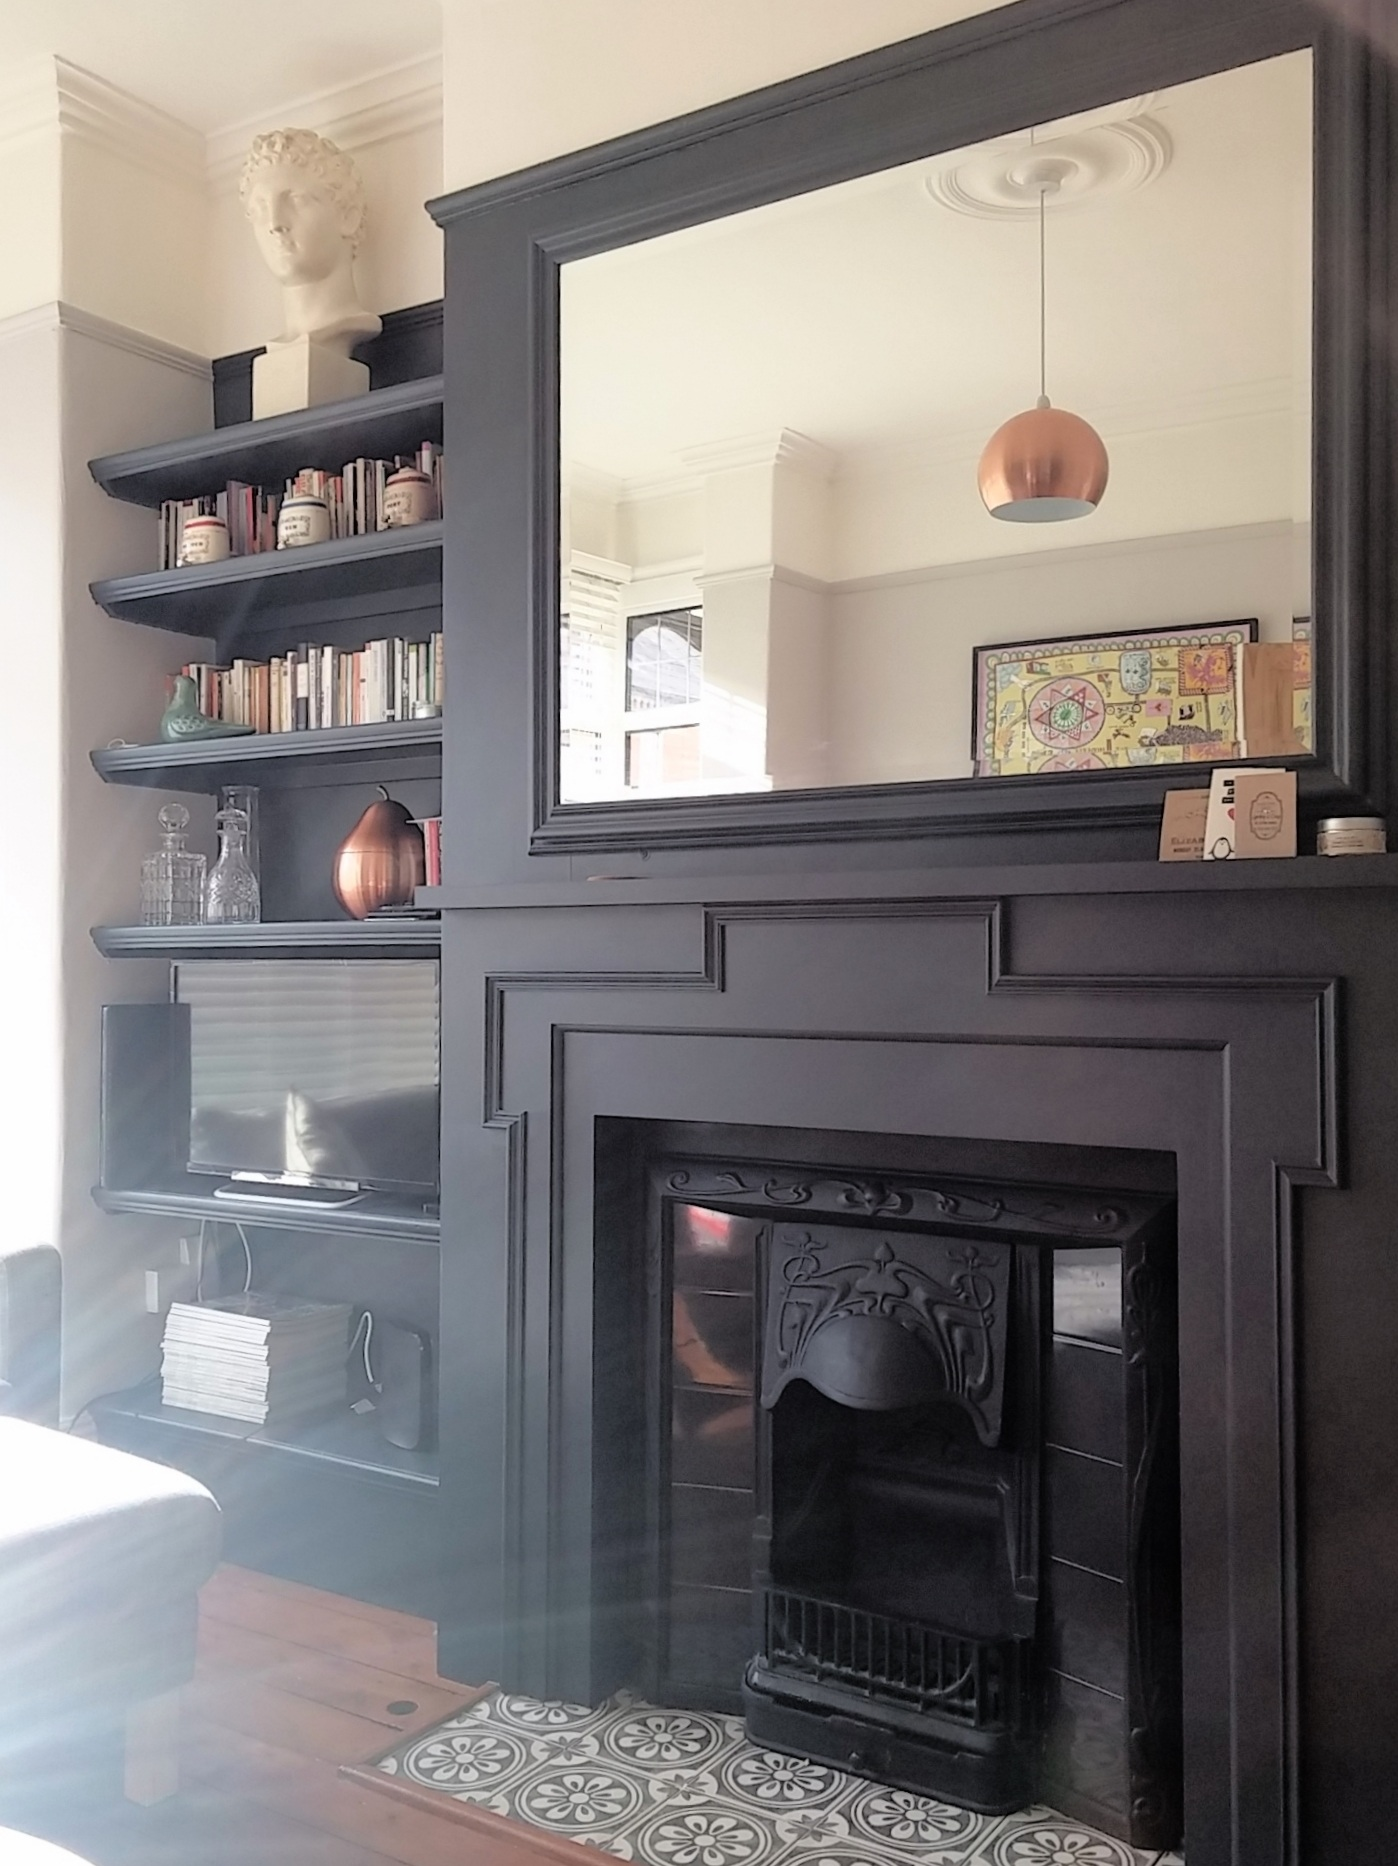 Living Room Shelving and Custom Fire Surround